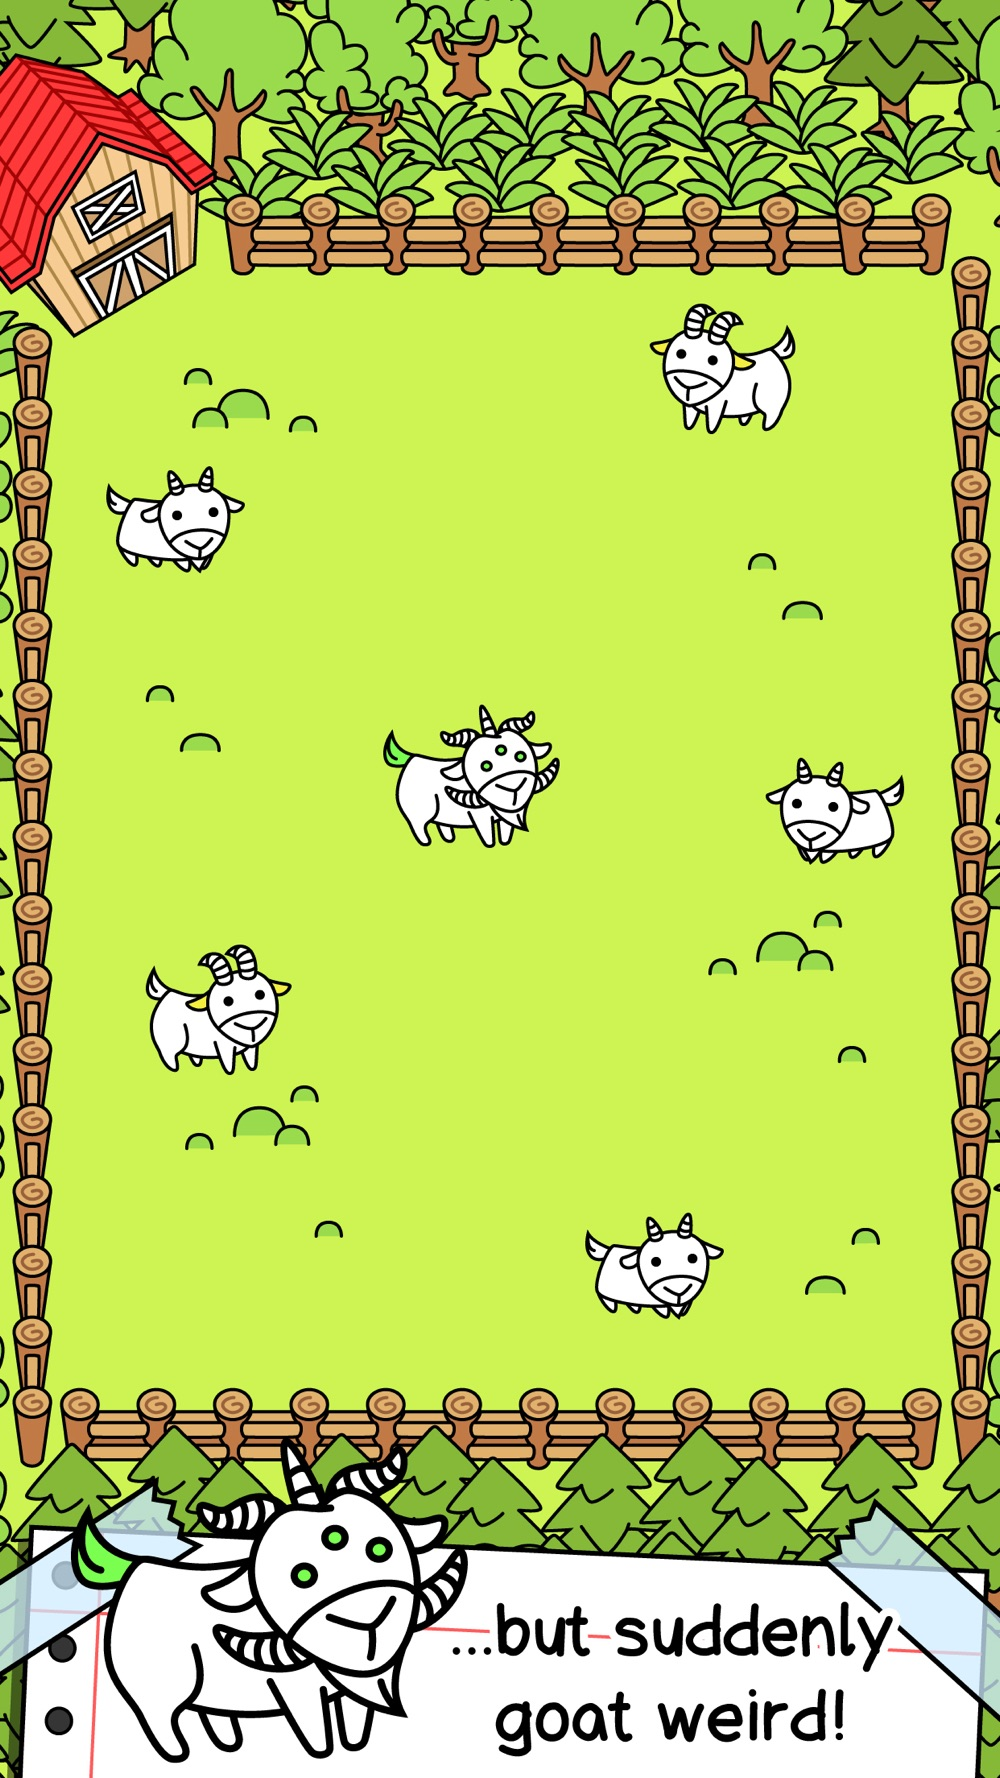 Goat Evolution | Clicker Game of the Mutant Goats hack tool